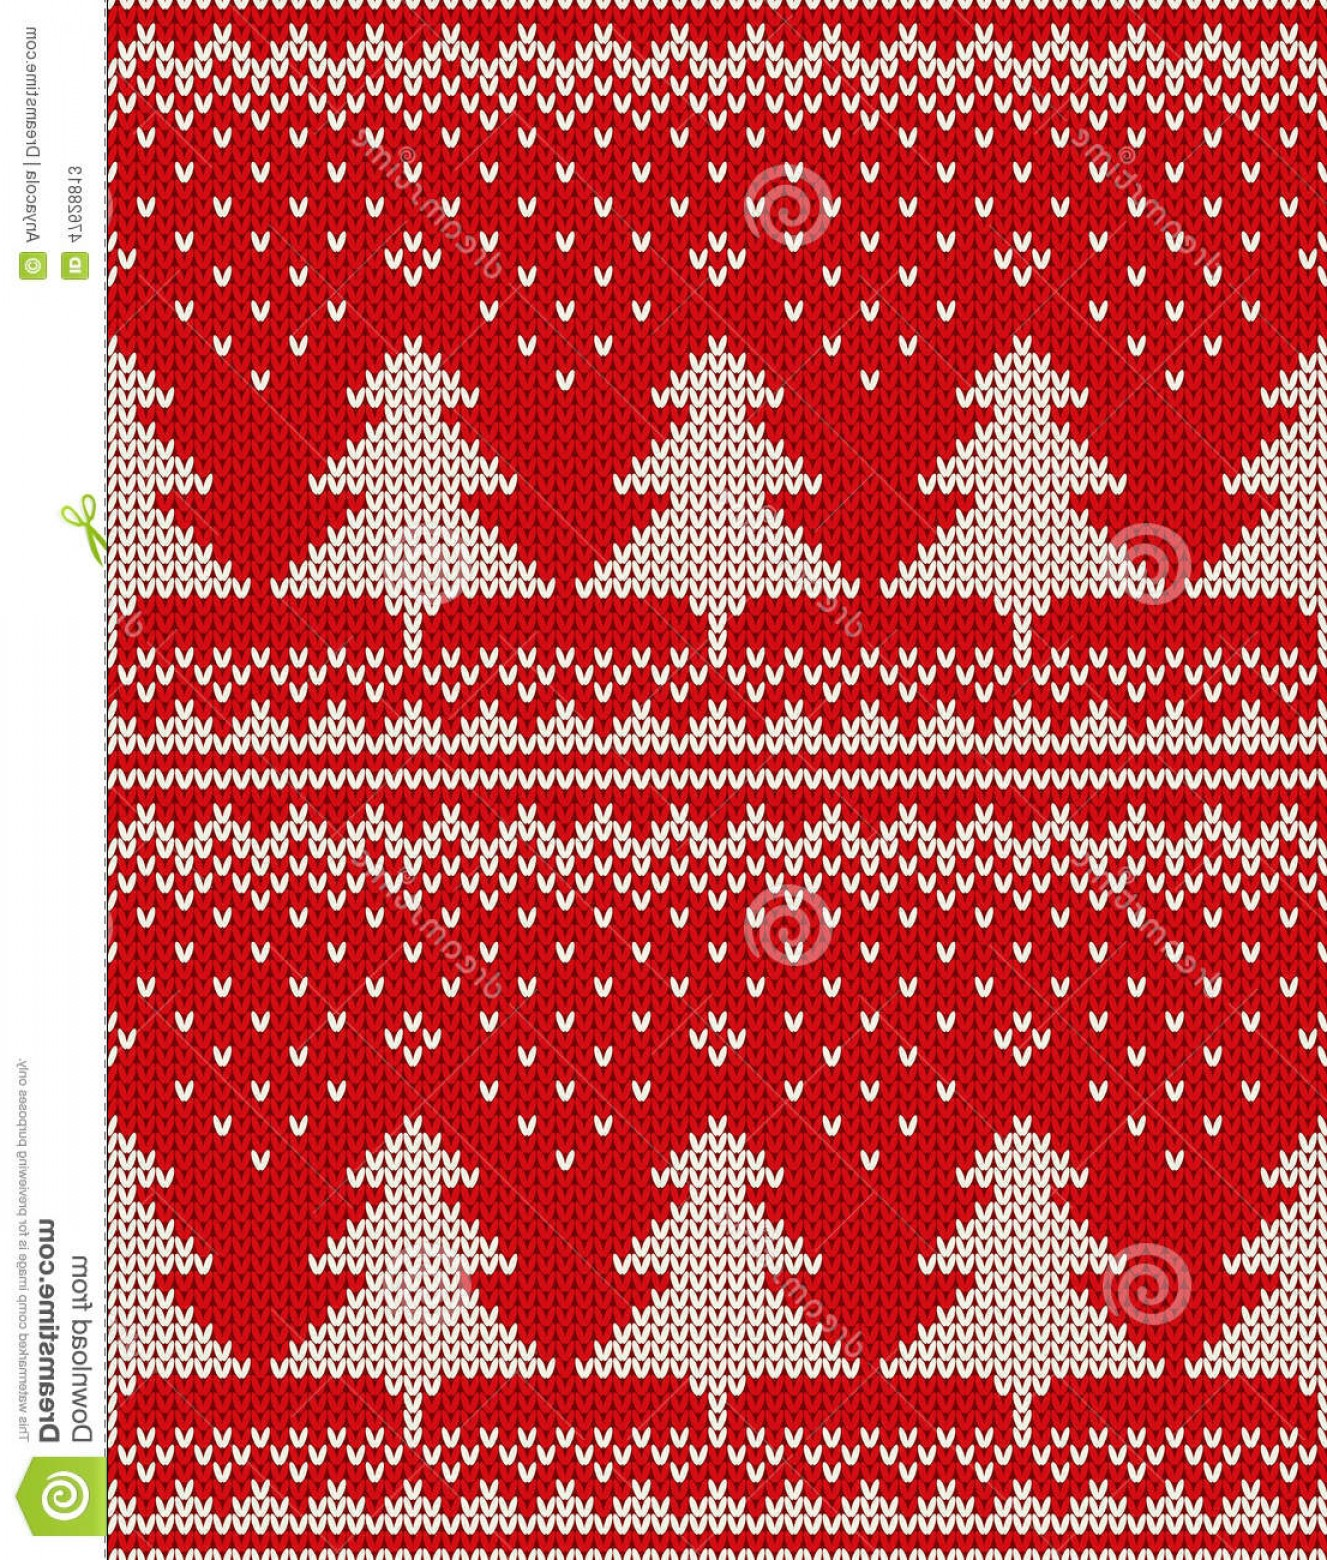 Christmas Sweater Design Vector: Stock Illustration Christmas Sweater Design Seamless Pattern Christmas Trees Ornament Wool Knitted Texture Eps Available Image